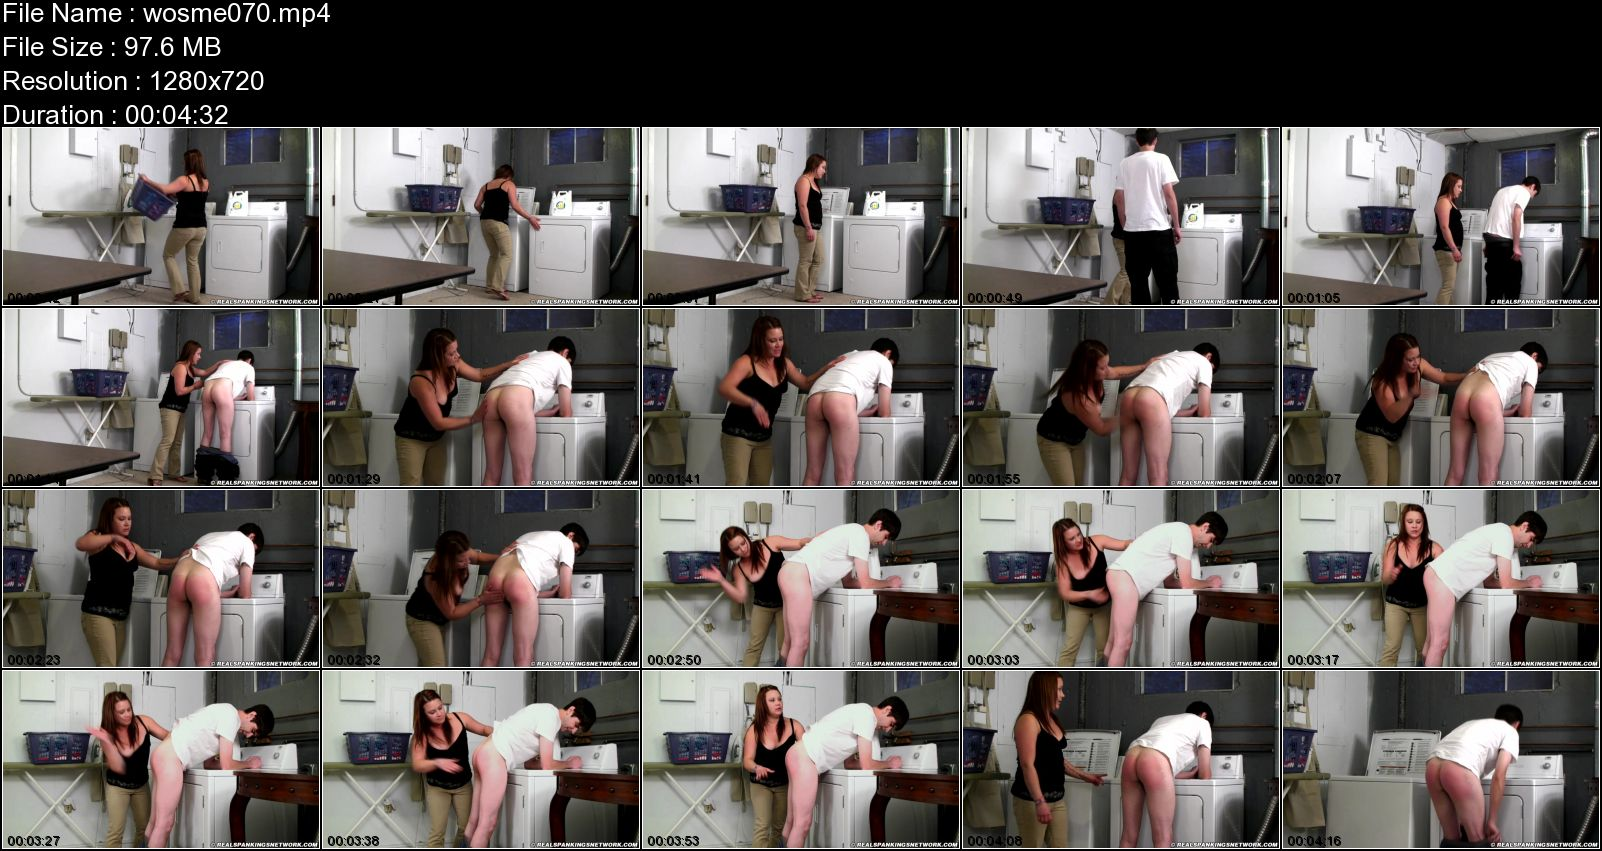 Zack, Claire In Scene: Zack Spanked for Being Lazy - WOMEN-SPANKING-MEN - HD/720p/MP4